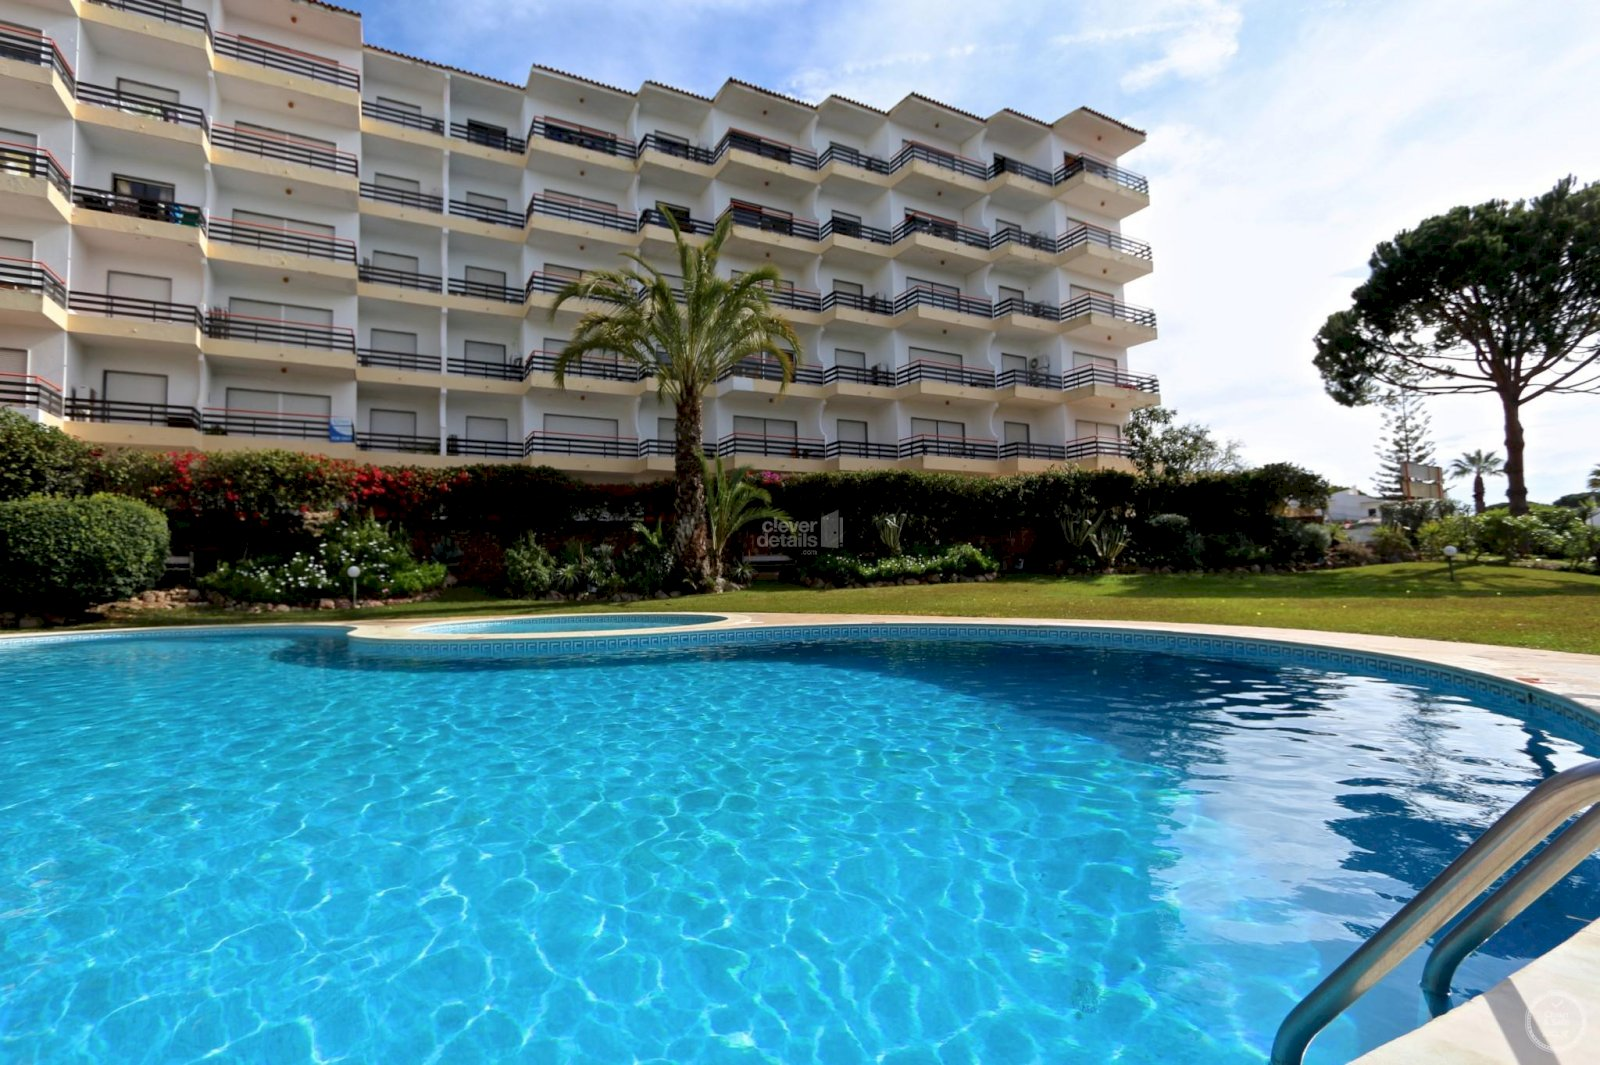 Cheap holidays in Vilamoura. Rentals accommodation with air-conditioning and swimming pool.